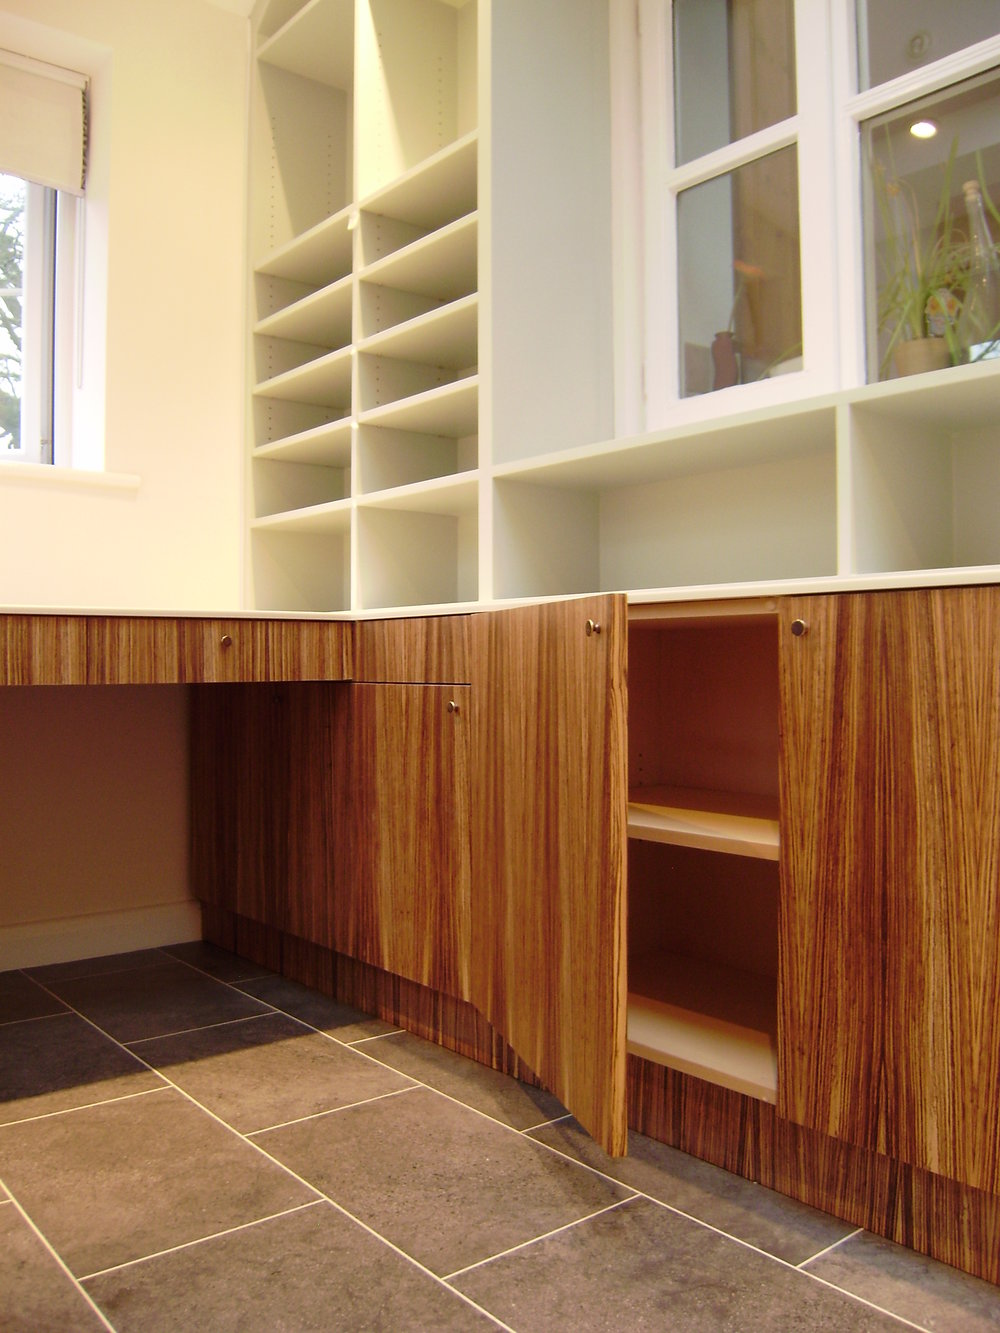 - Every possible space incorporates storage.